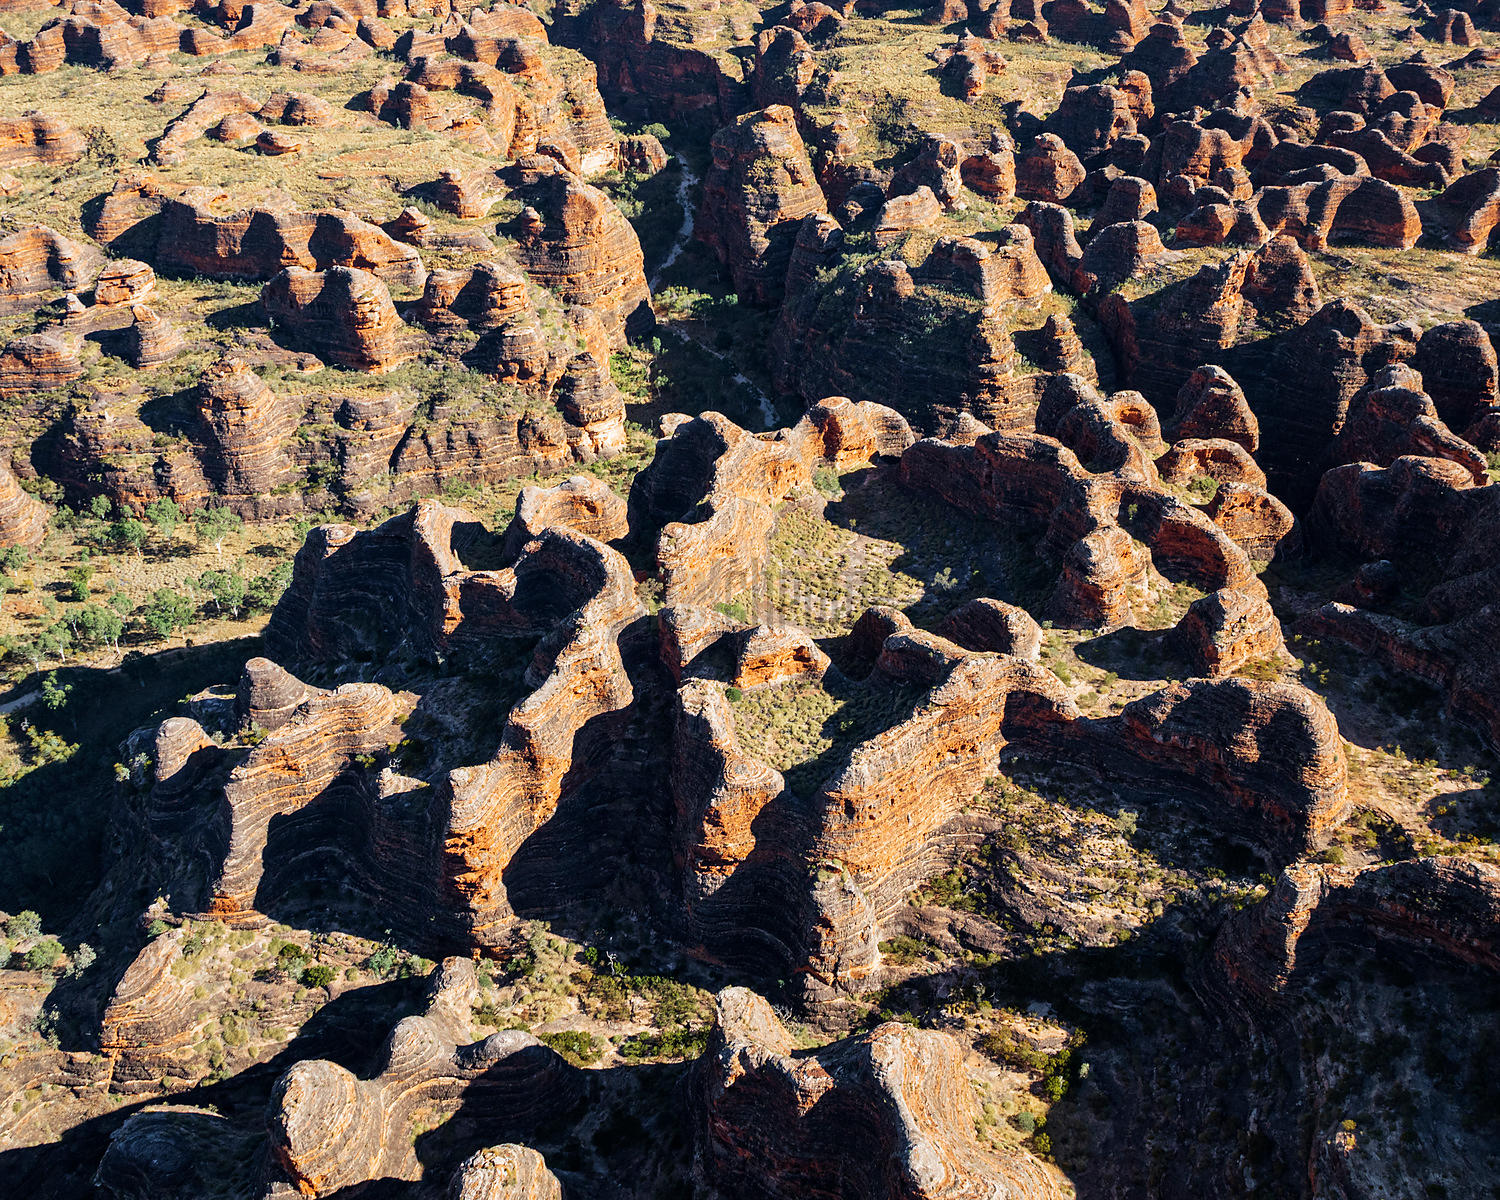 Aerial View of the Bungle Bungles